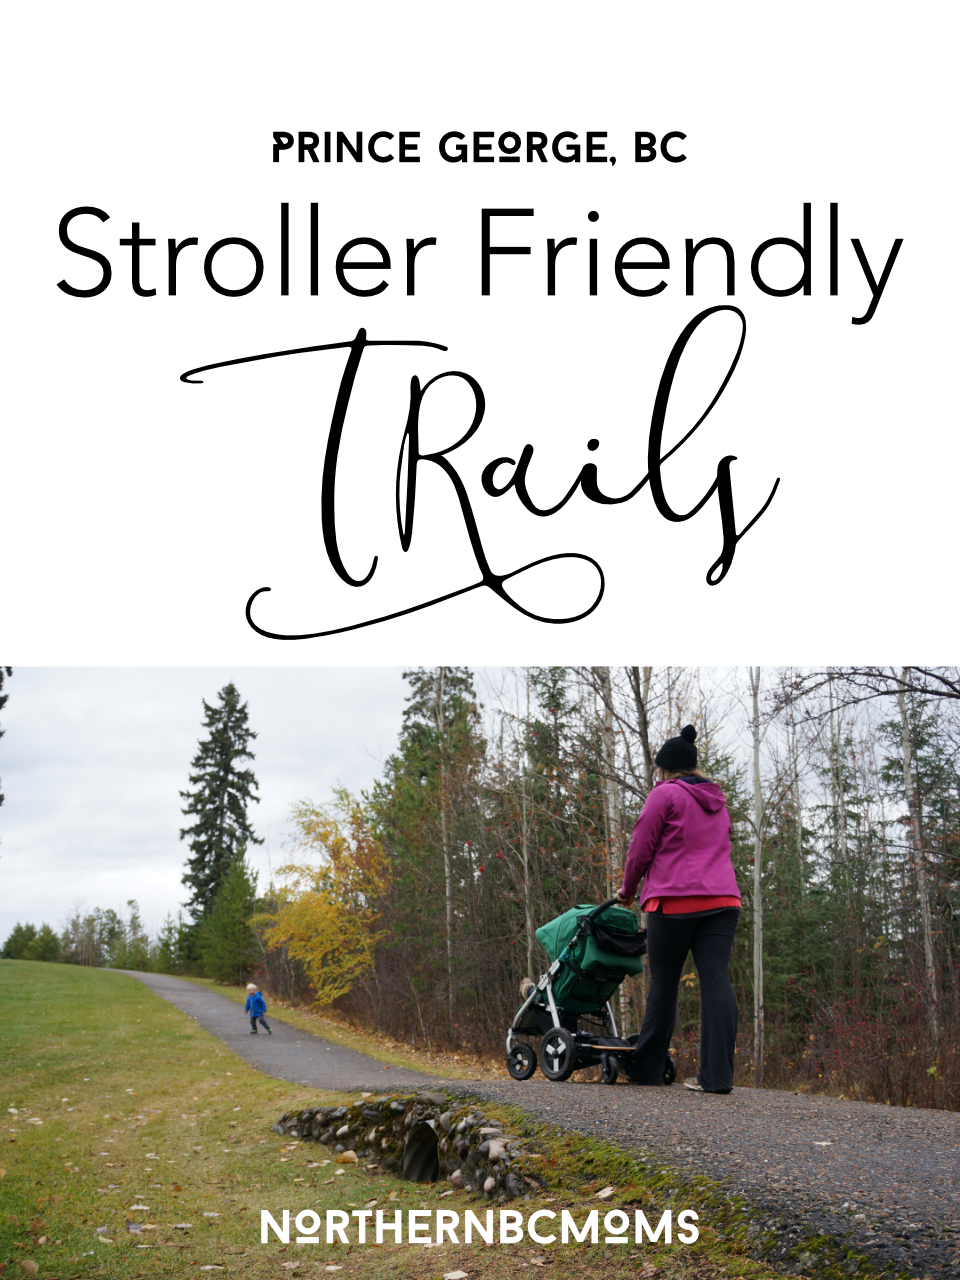 Stroller Friendly Trails in Prince George, BC